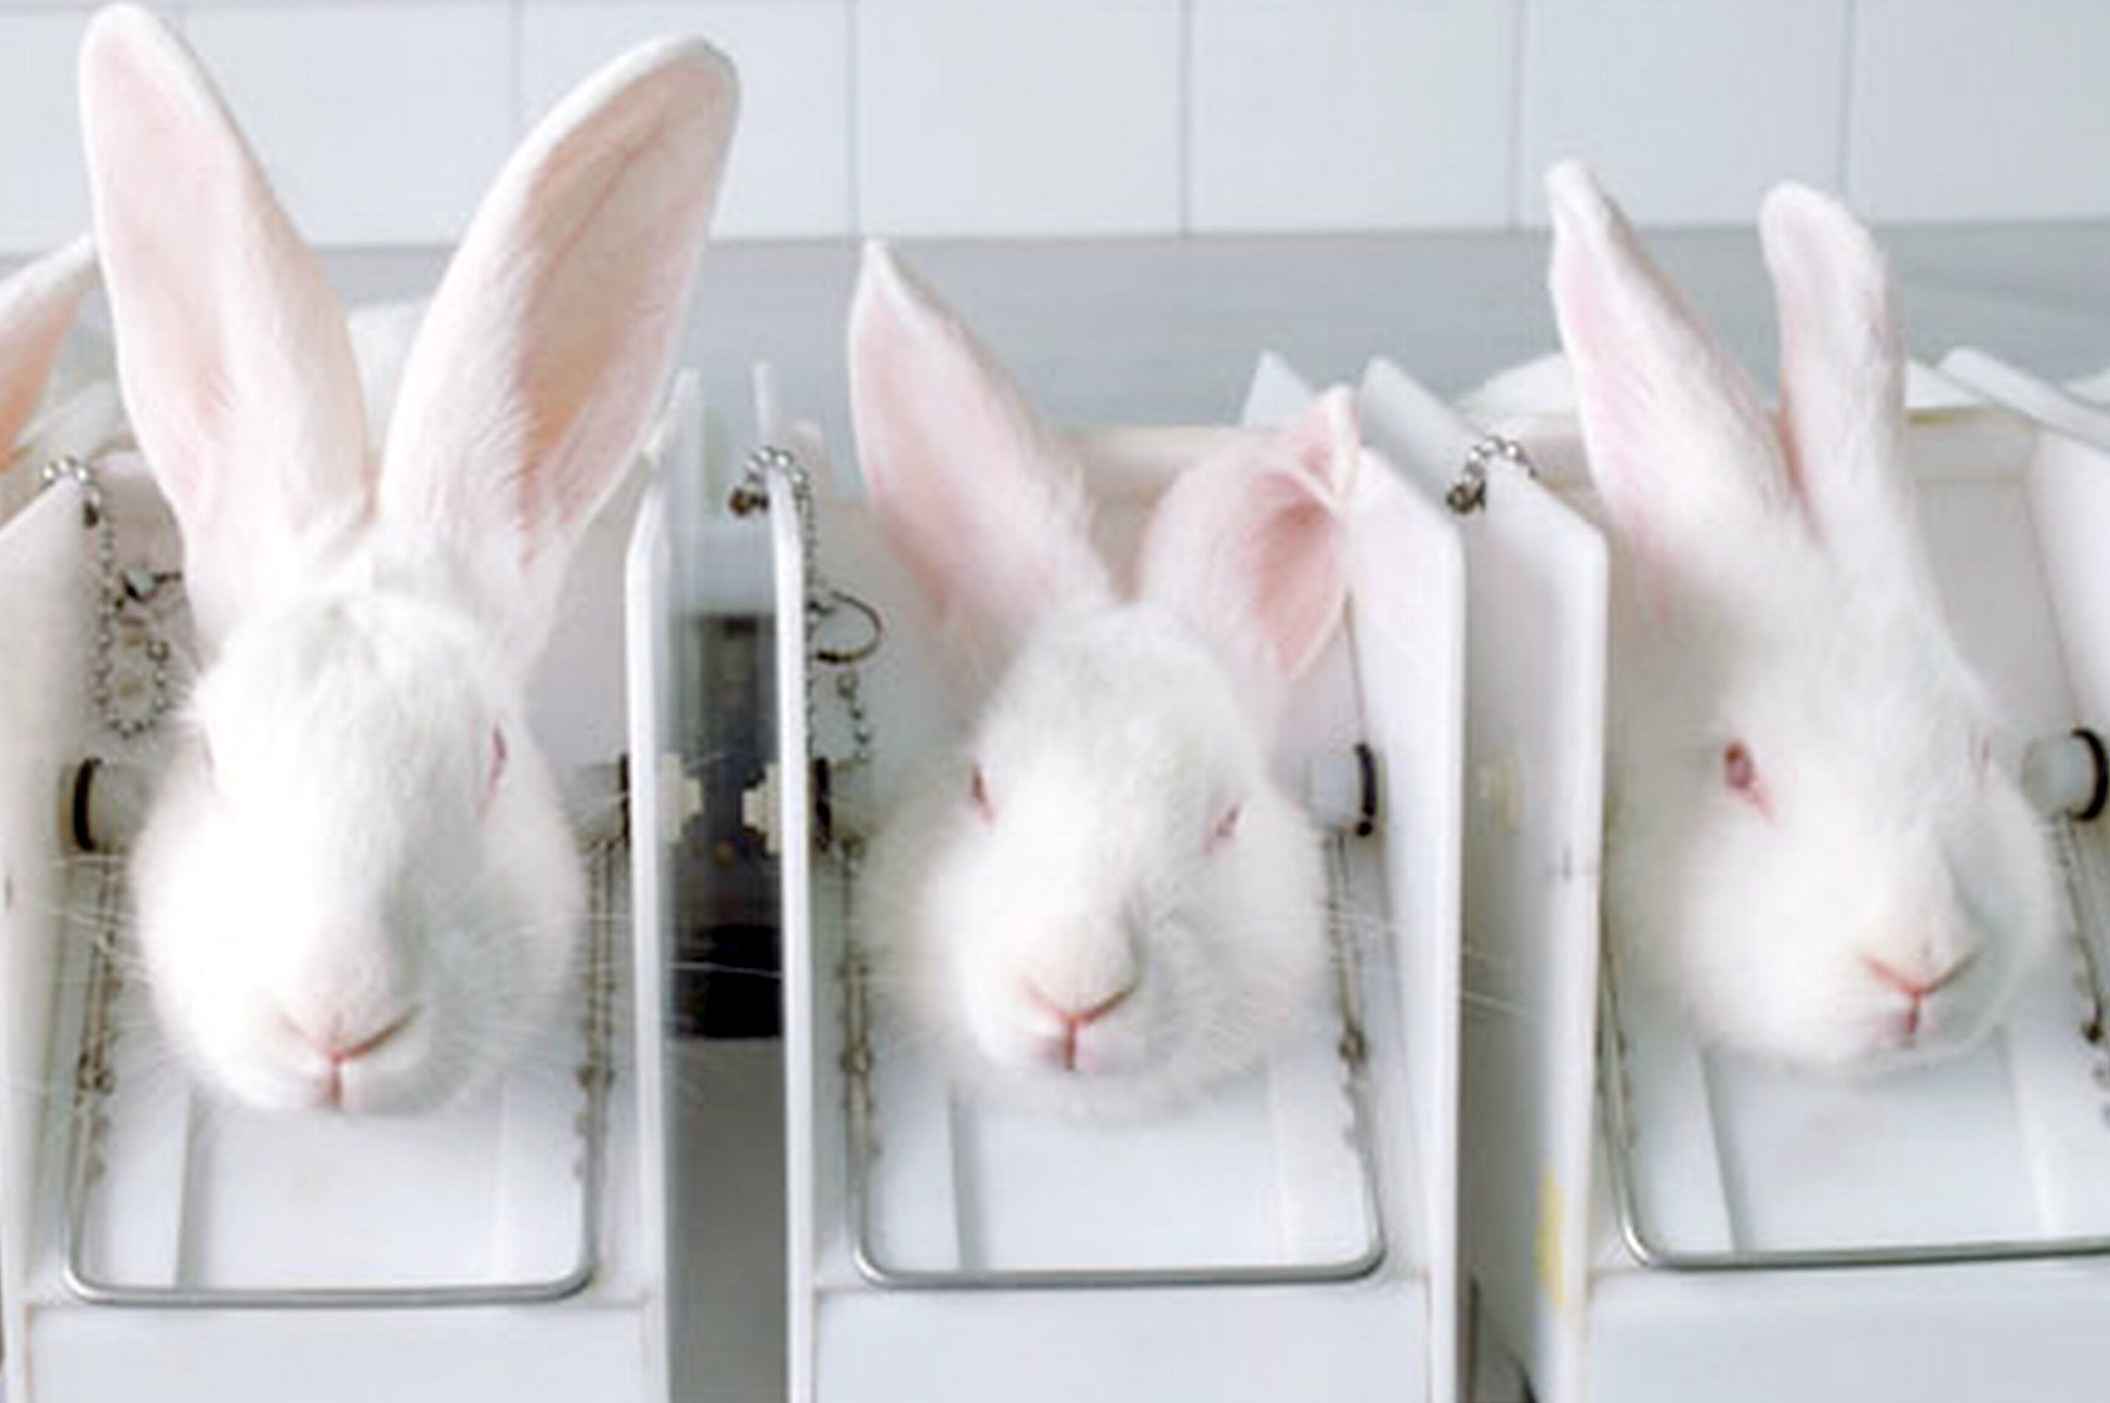 persuasive essays on animal testing Argumentative essay on animal testing the practice of using animals for testing has been a controversial issue over the past thirty years animal testing is a morally debated practice.